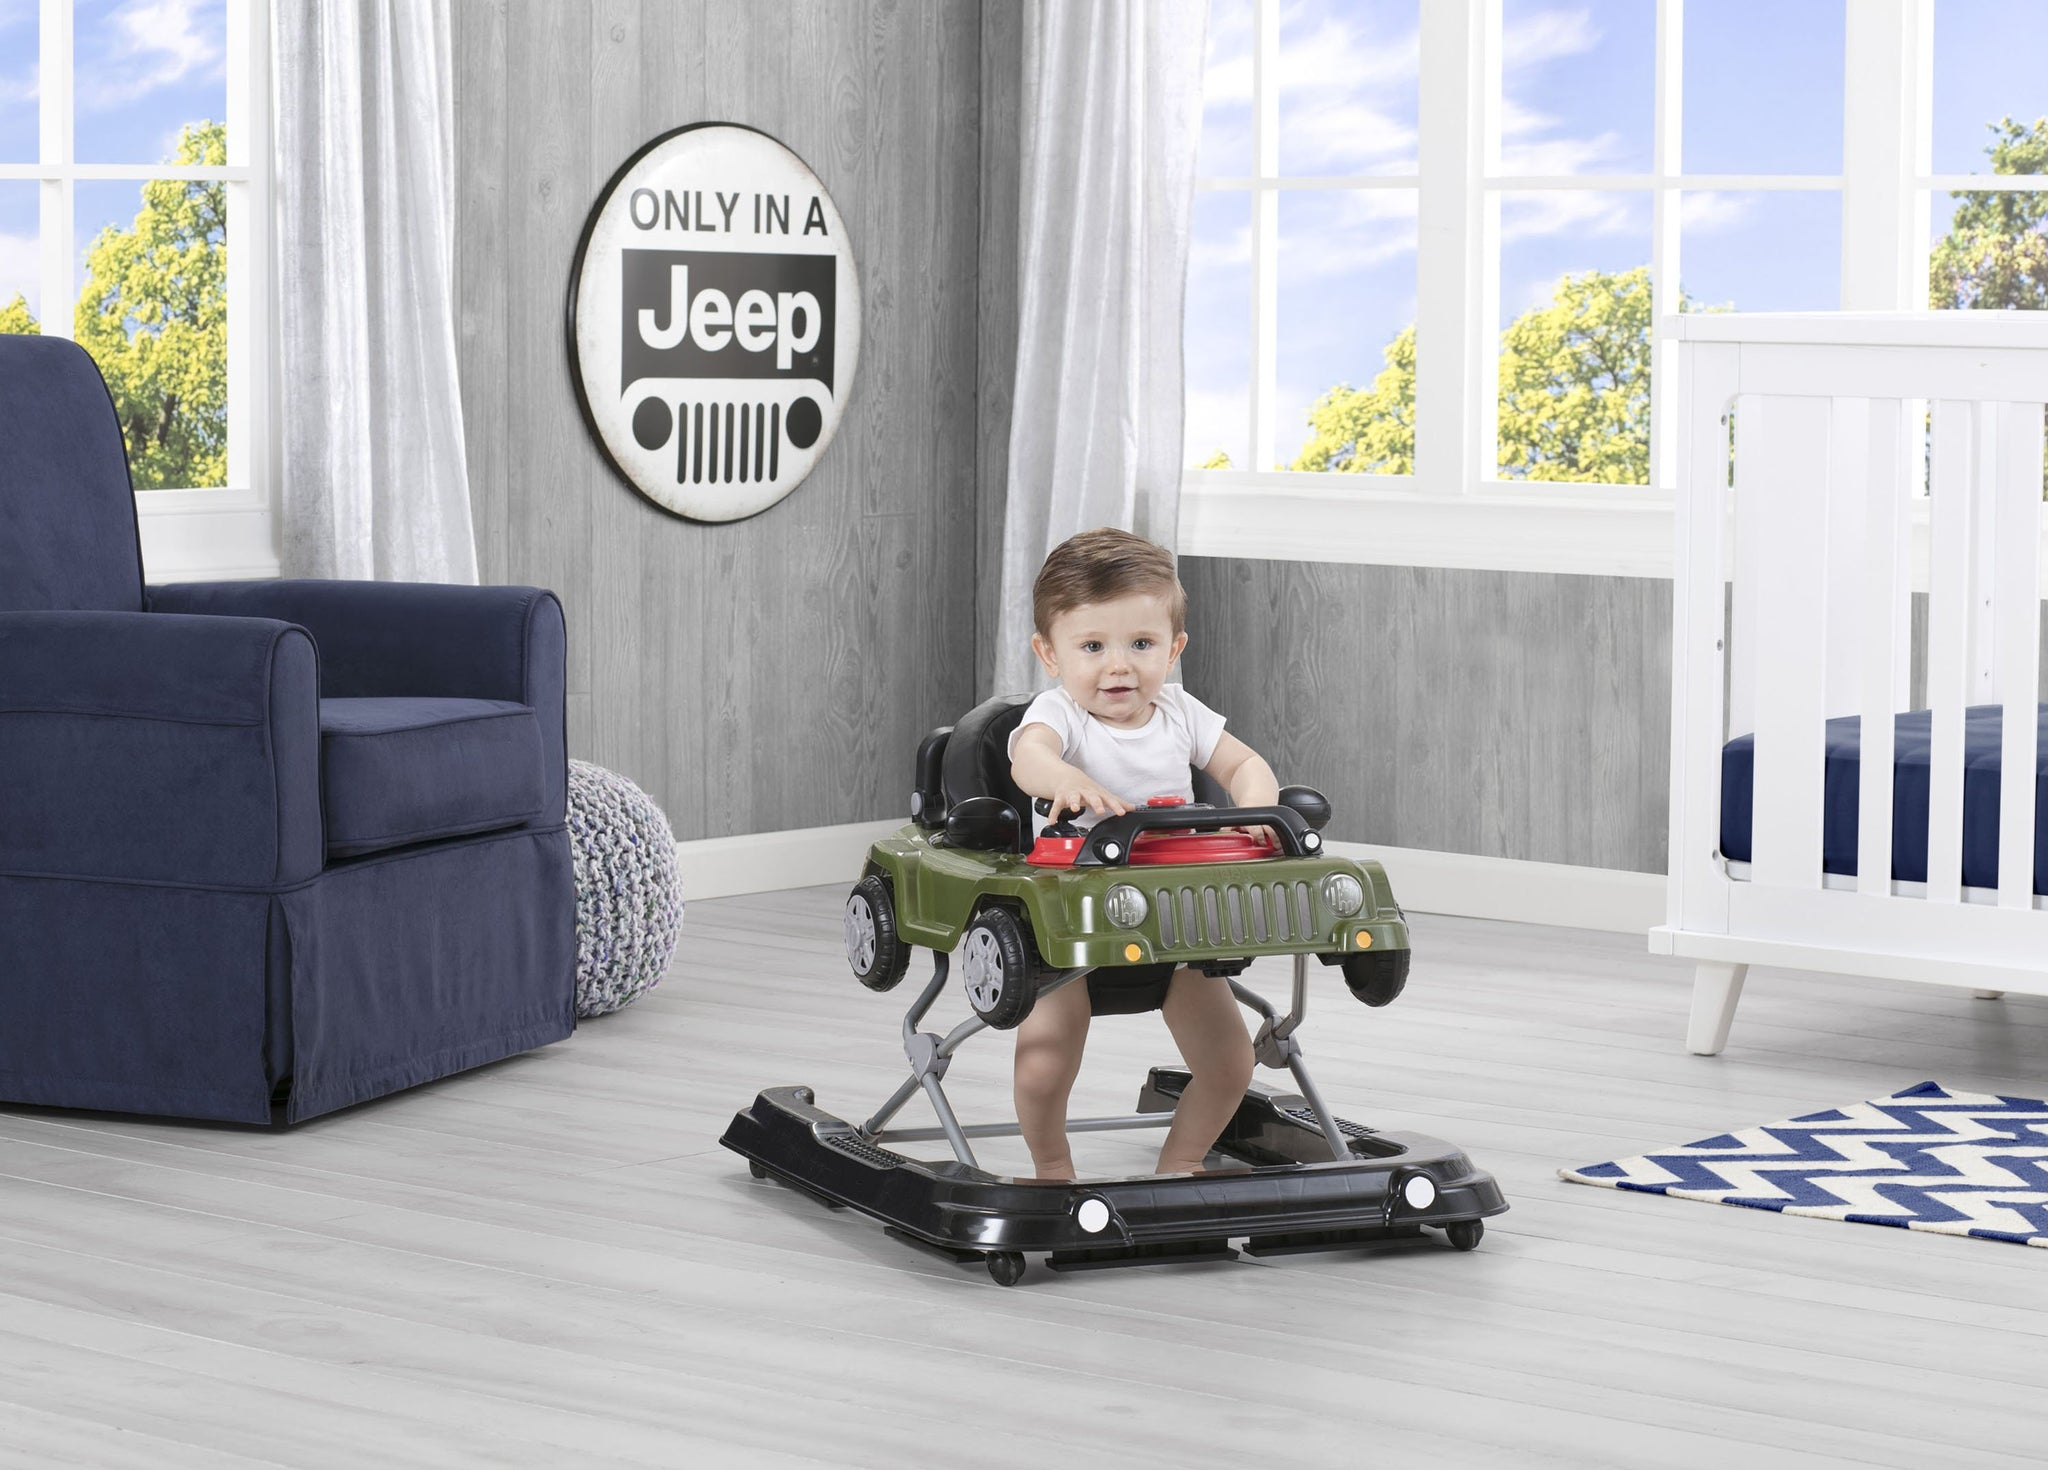 J is for Jeep Anniversary Green (348) Classic Wrangler 3-in-1 Activity Walker (22408), Hangtag with baby, a1a